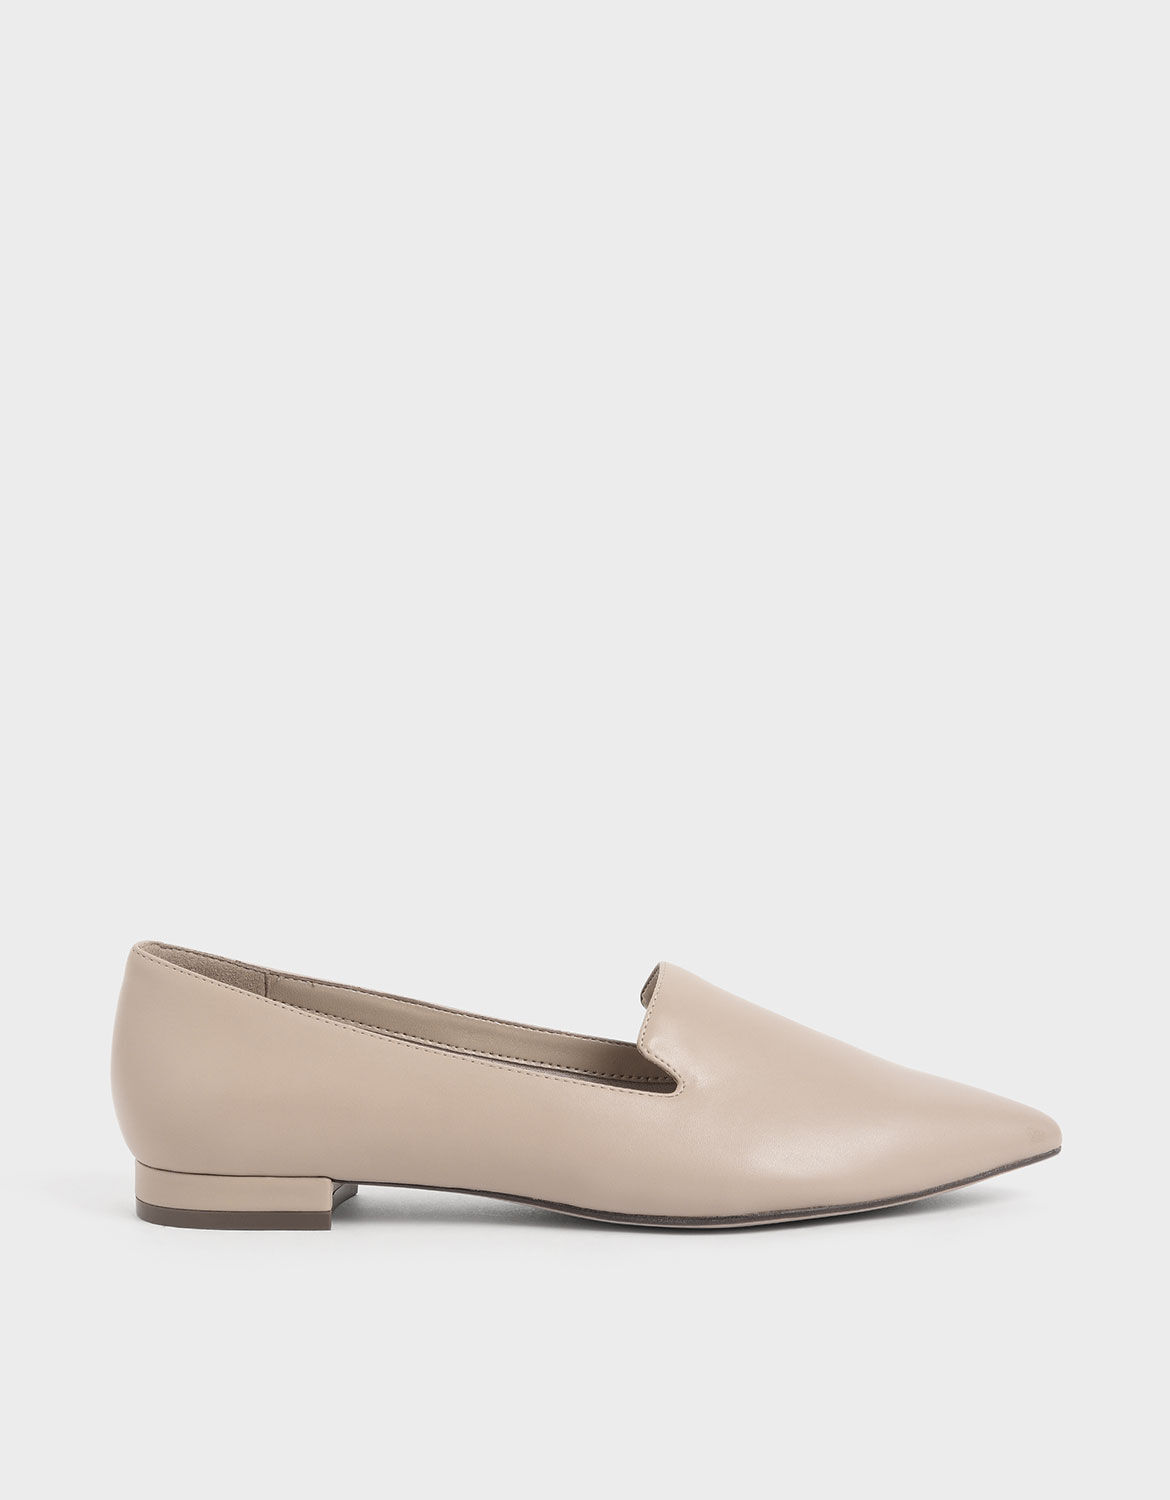 Beige Pointed Toe Loafer Flats